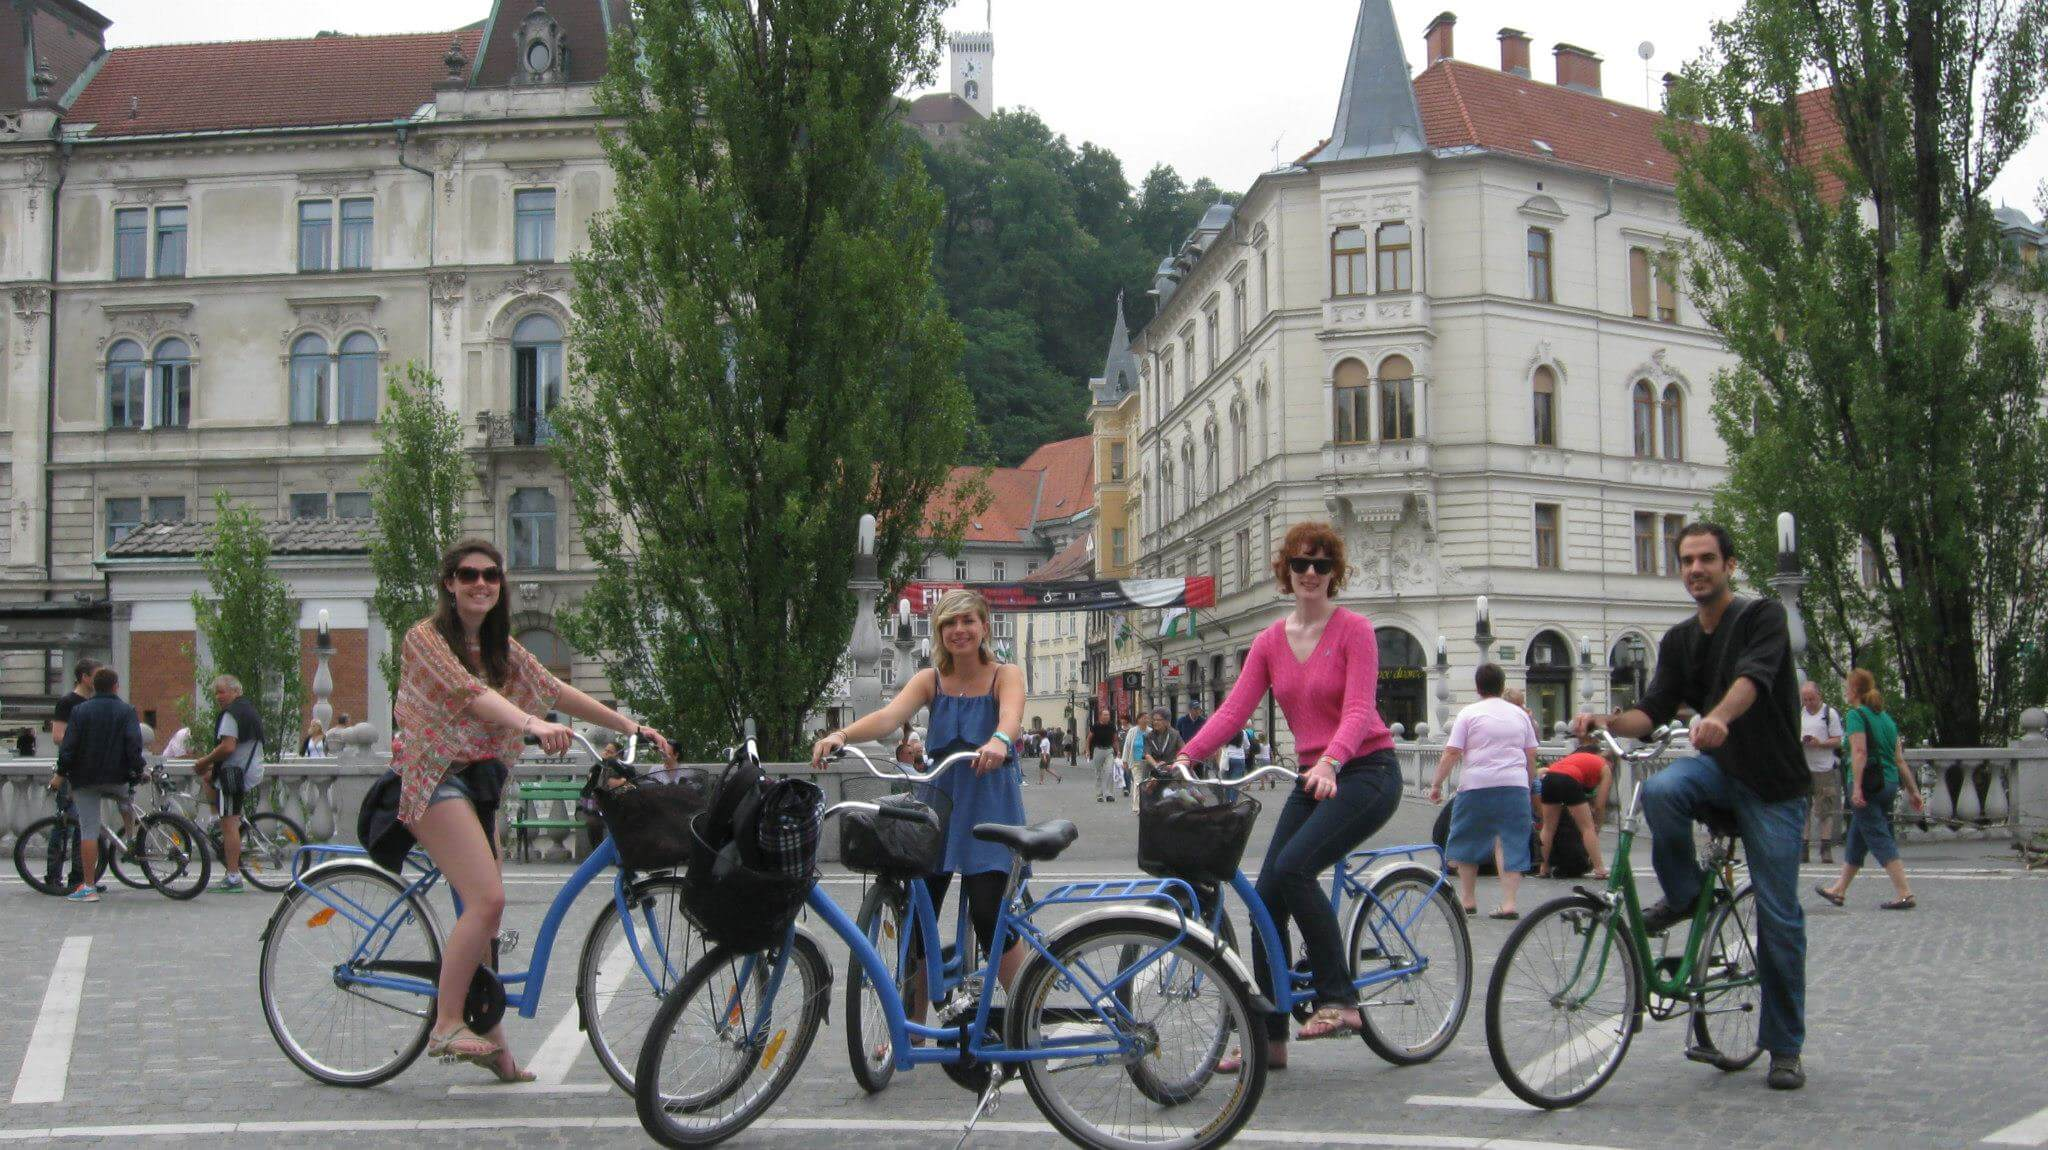 Gruop of turist on a bike tour through the city